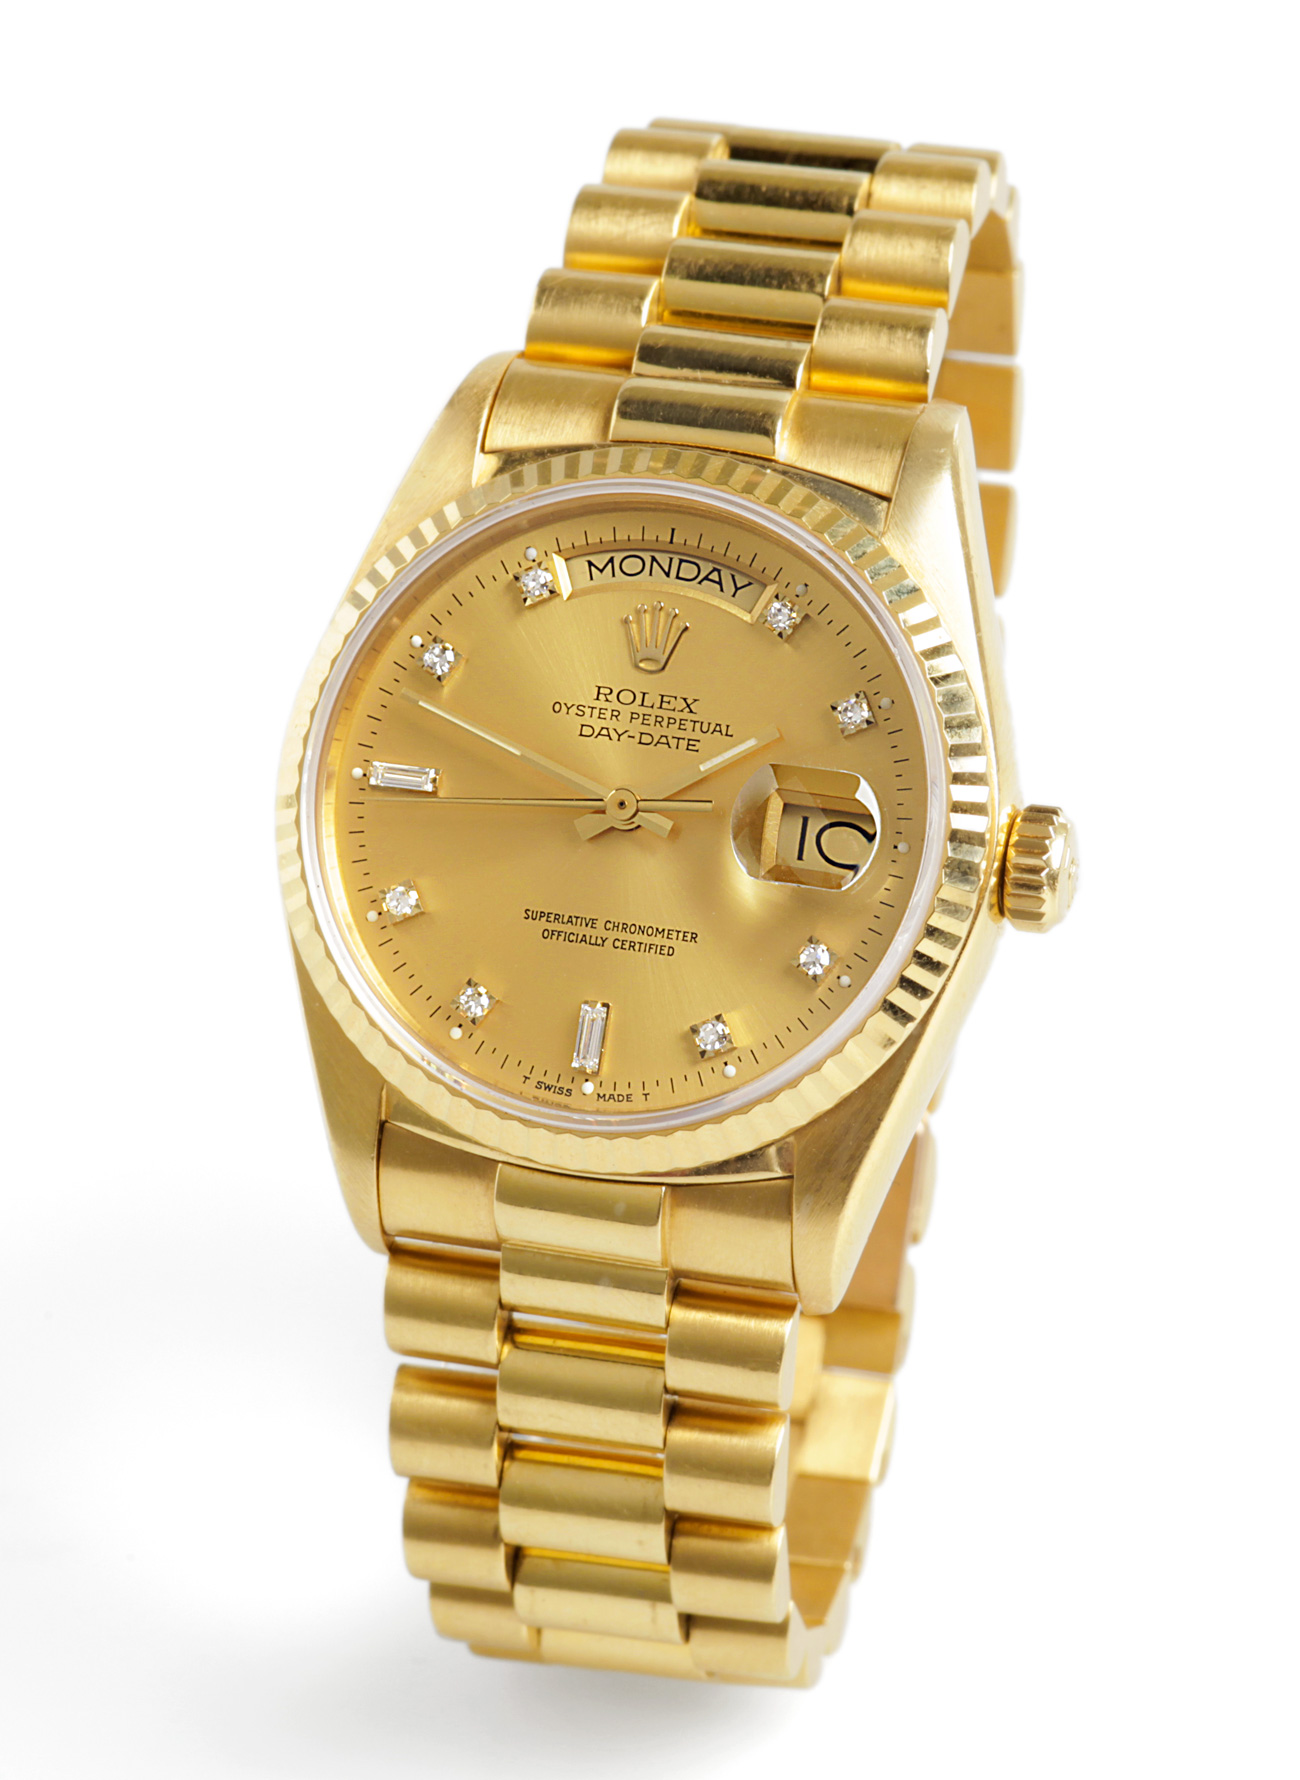 reloj rolex oyster perpetual datejust superlative chronometer officially certified